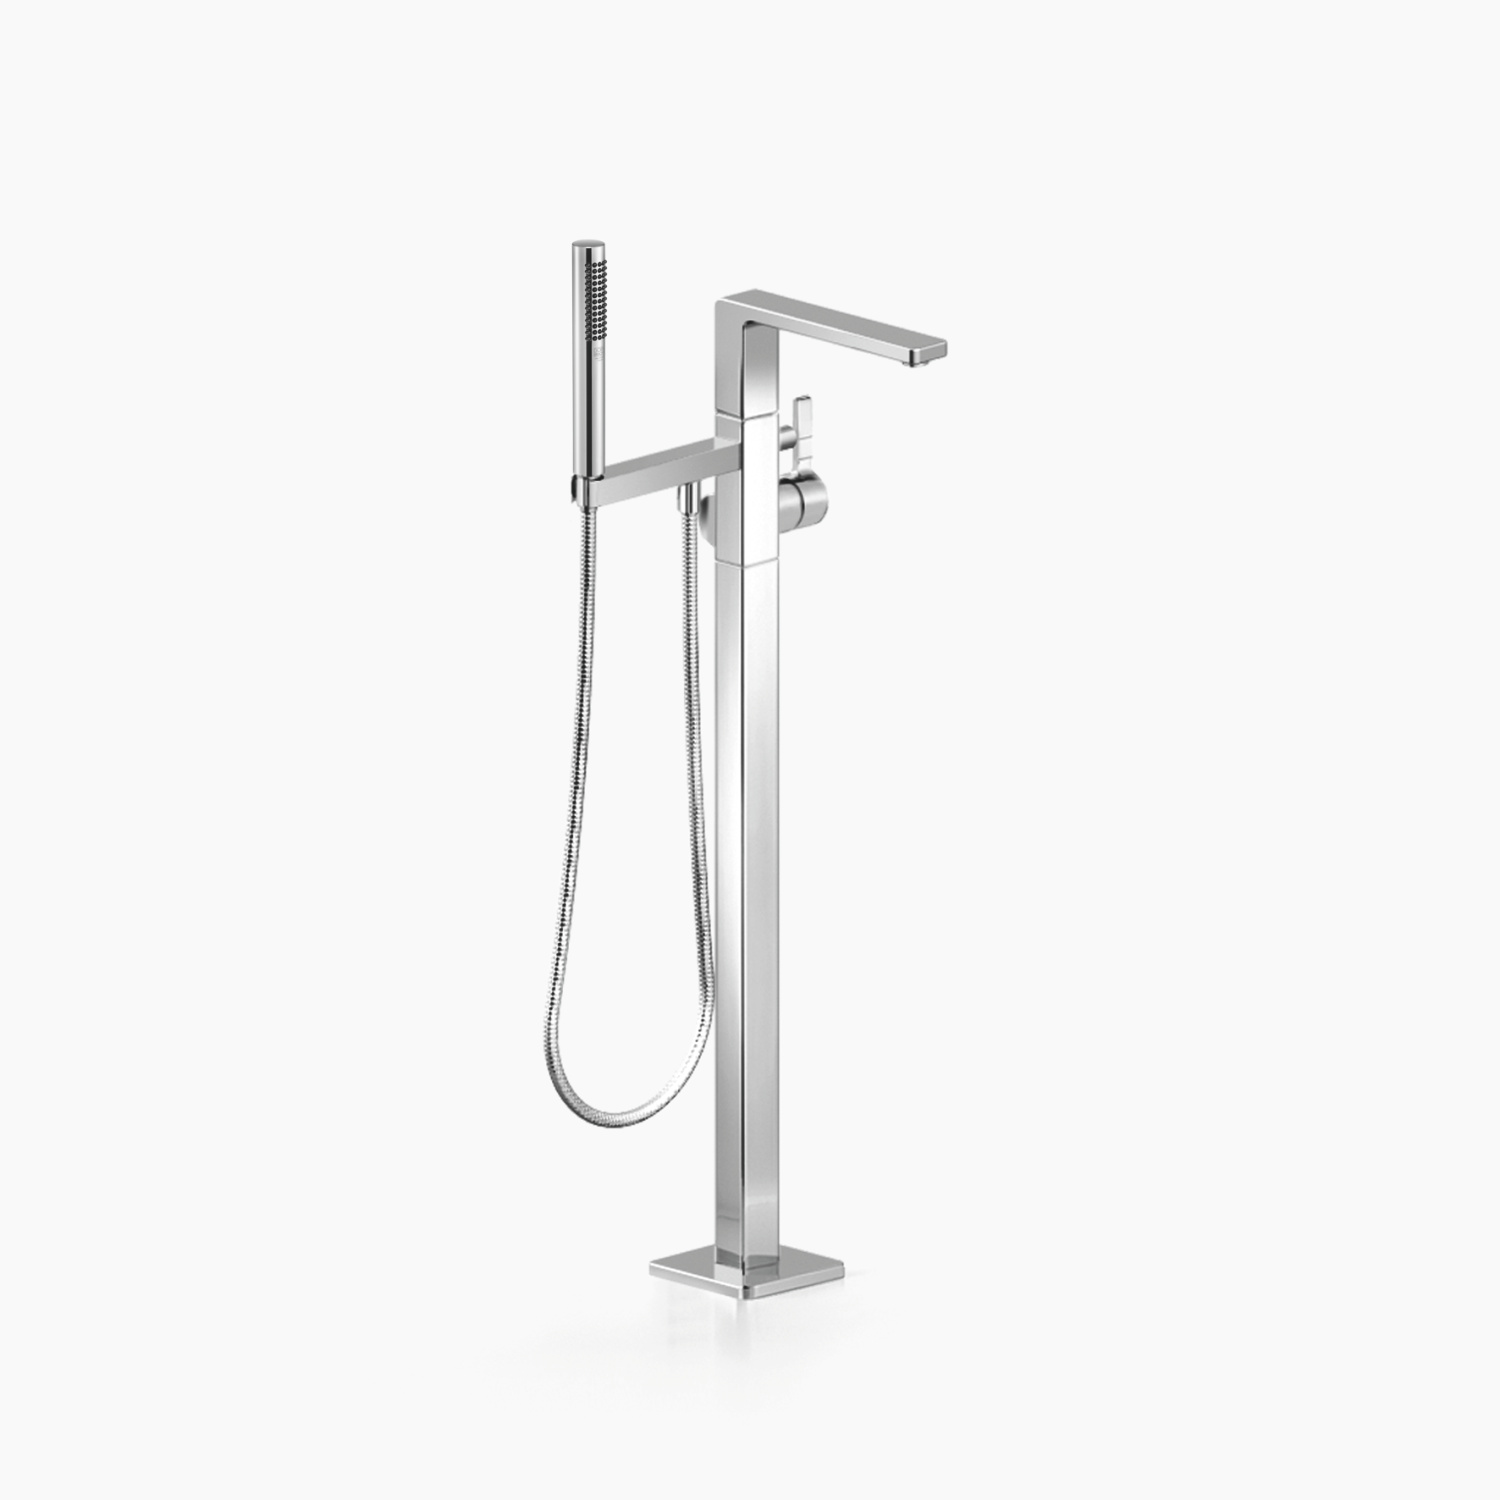 Single-lever bath mixer with stand pipe for free-standing assembly with hand shower set - polished chrome